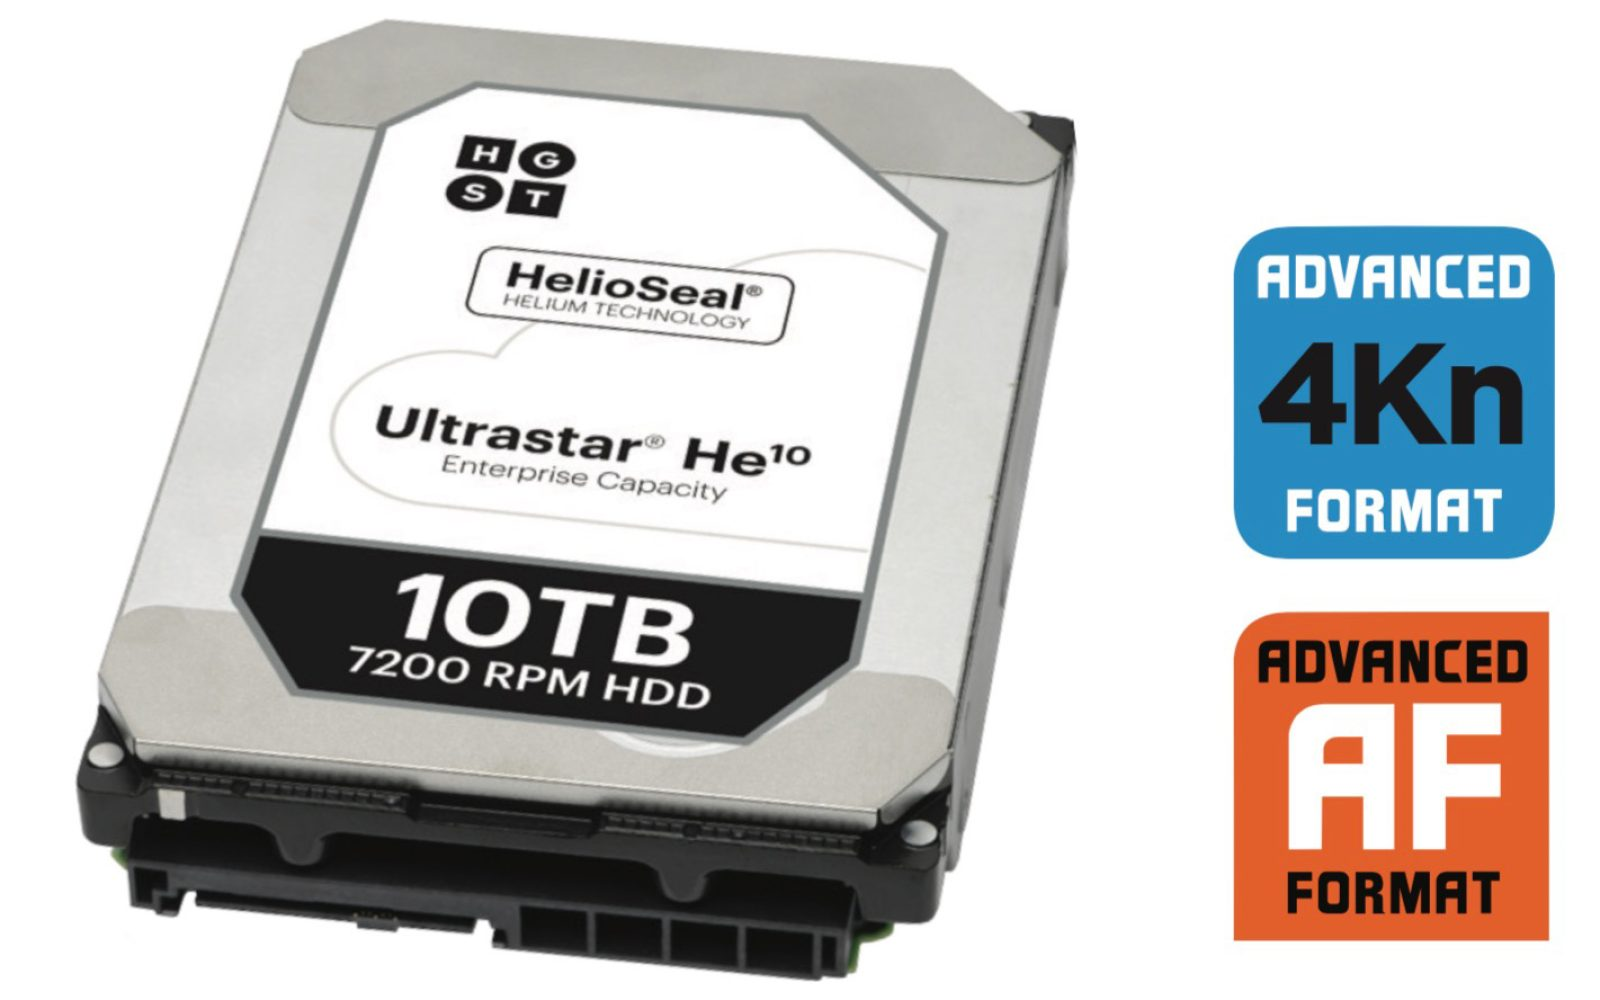 A 10TB drive for your iMac? HGST's new Ultrastar He10 uses